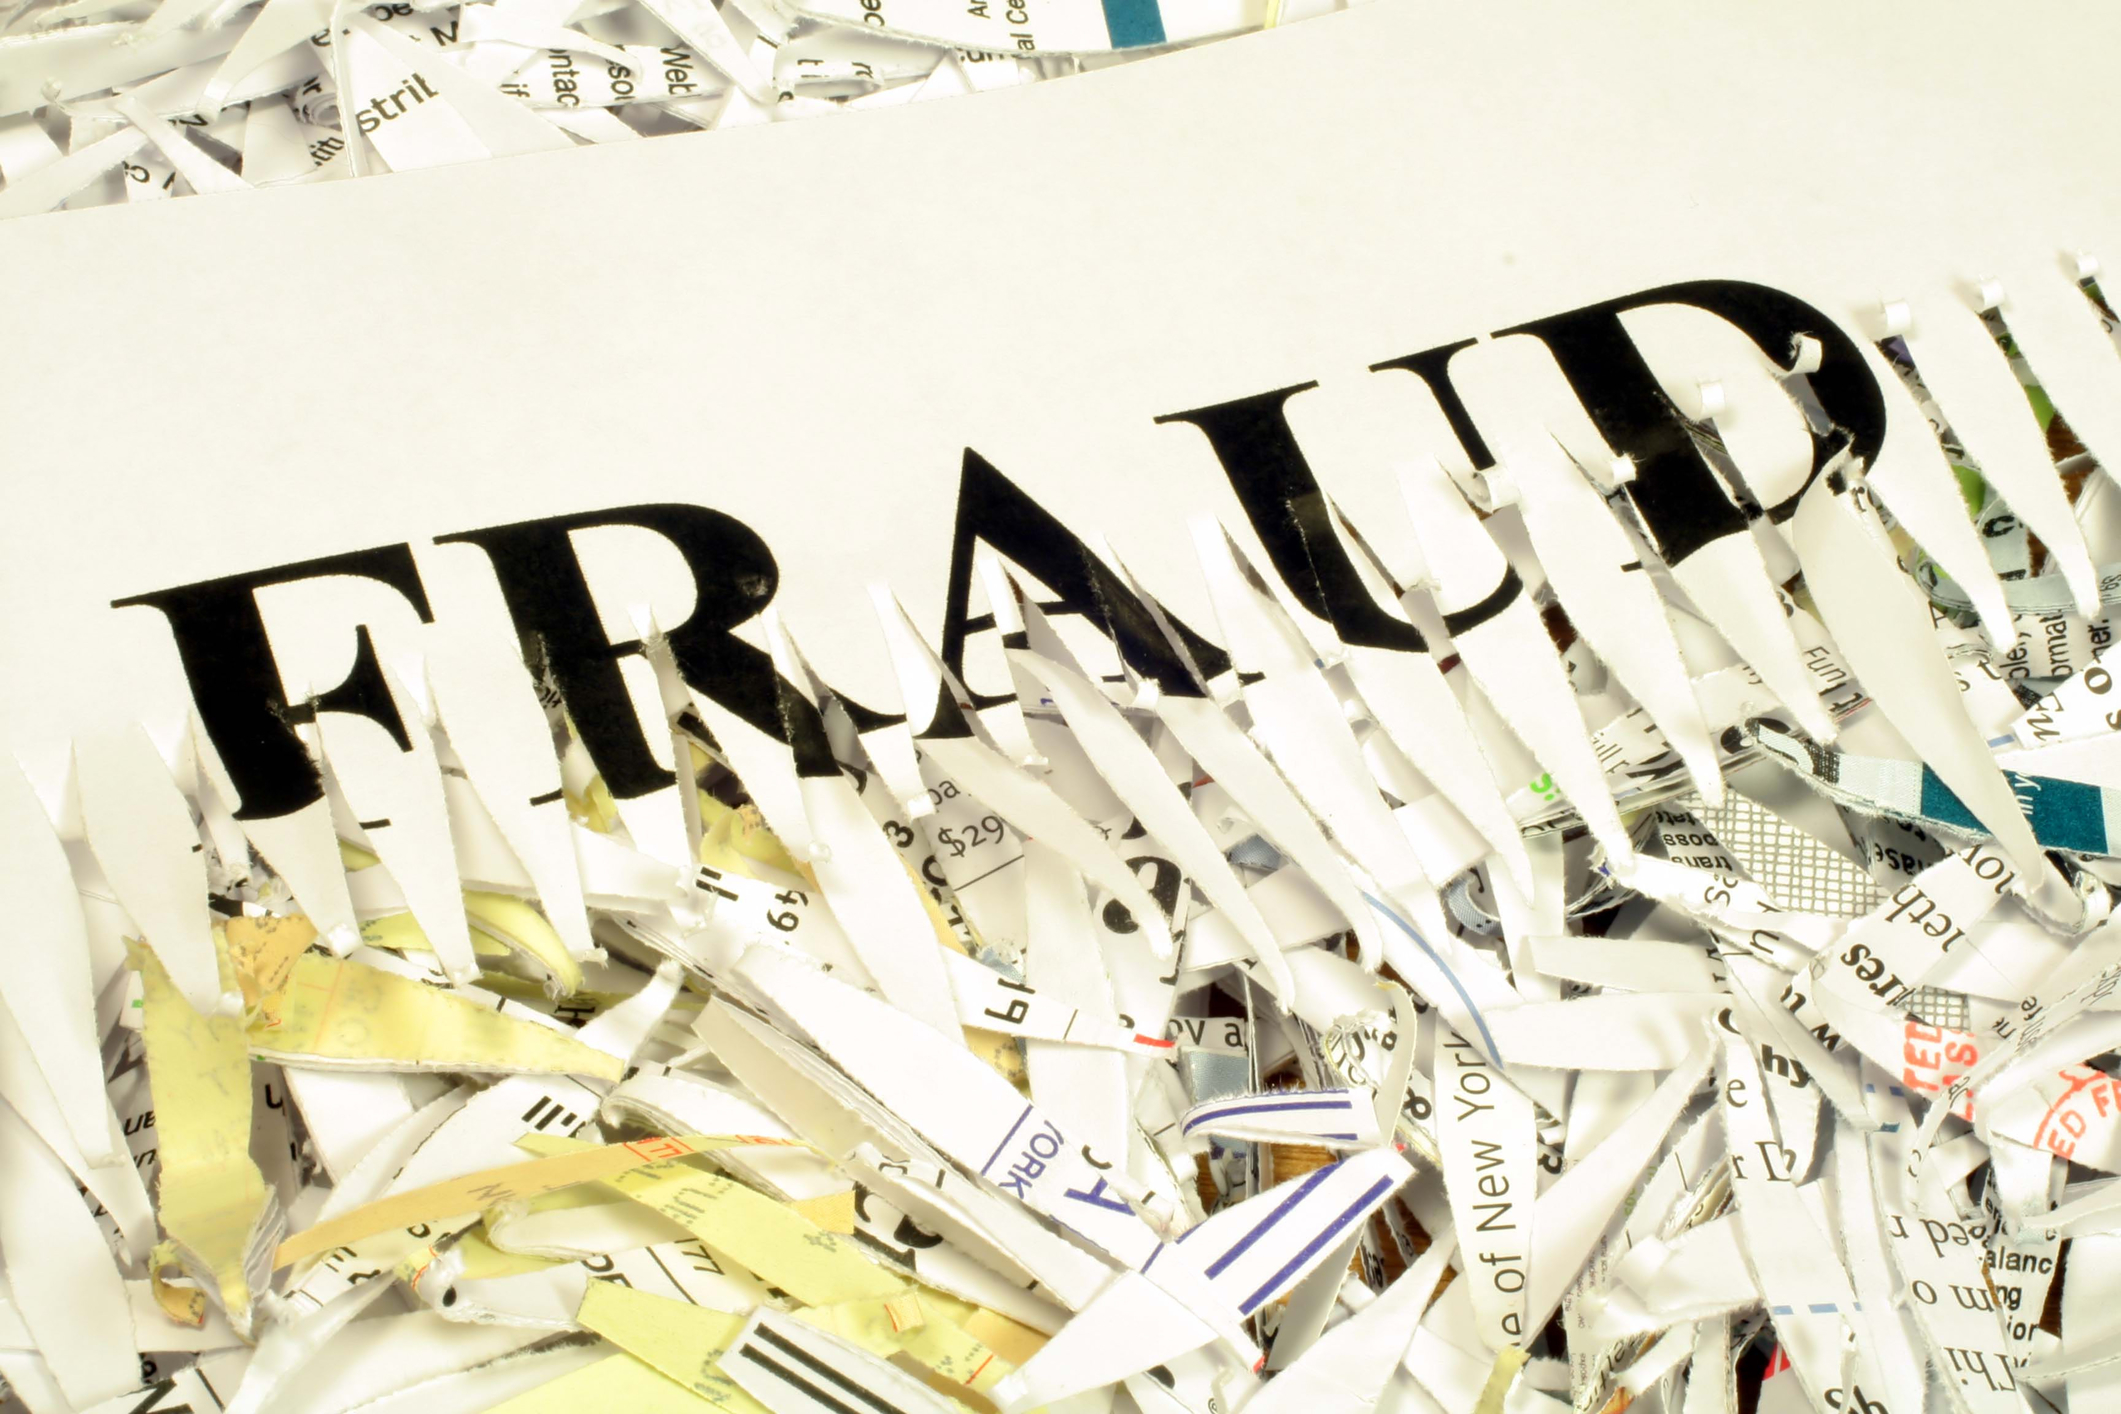 shredded-document-fraud-1535576